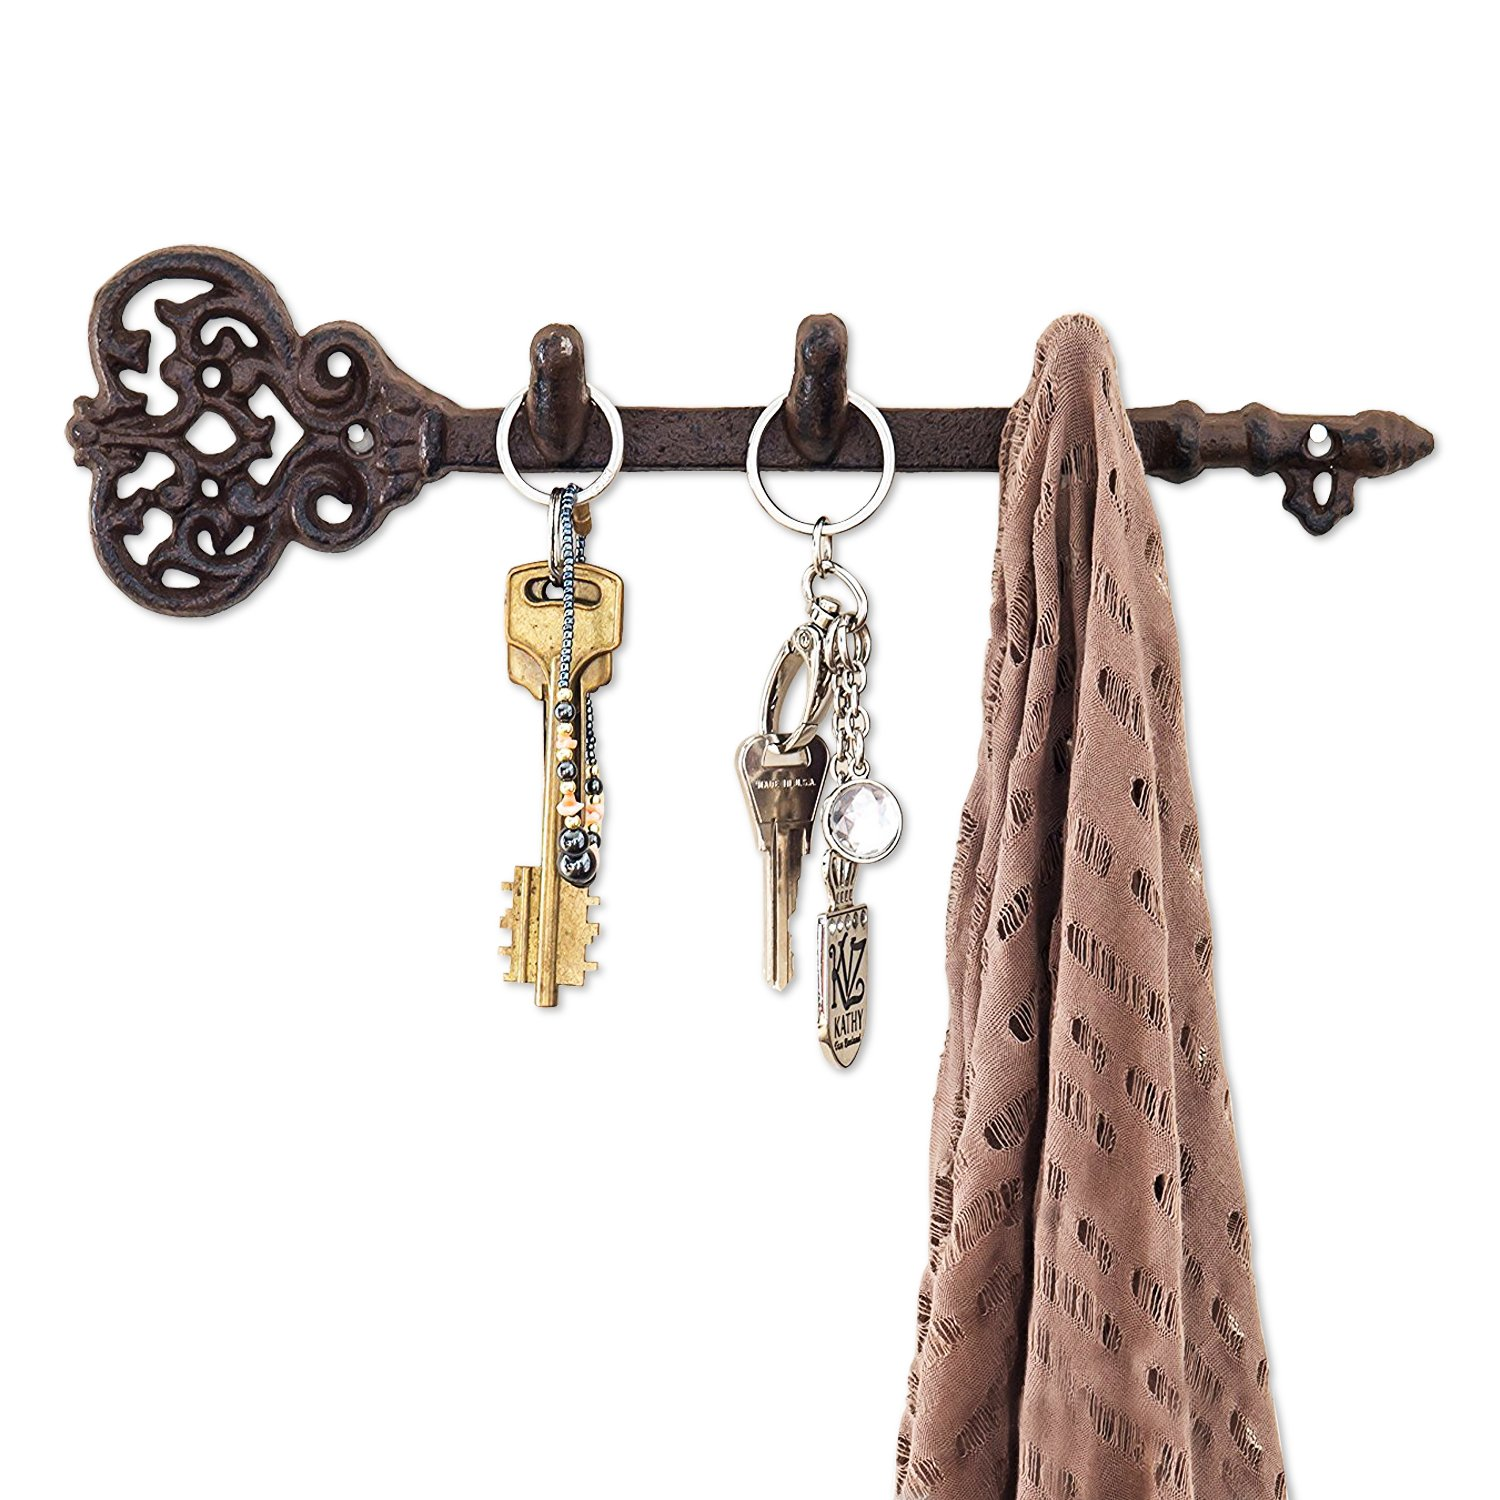 Decorative Wall Mounted Key Holder - Vintage Key With 3 Hooks - Wall Mounted - Rustic Cast Iron - 11.6 x 3''- With Screws And Anchors By Comfify